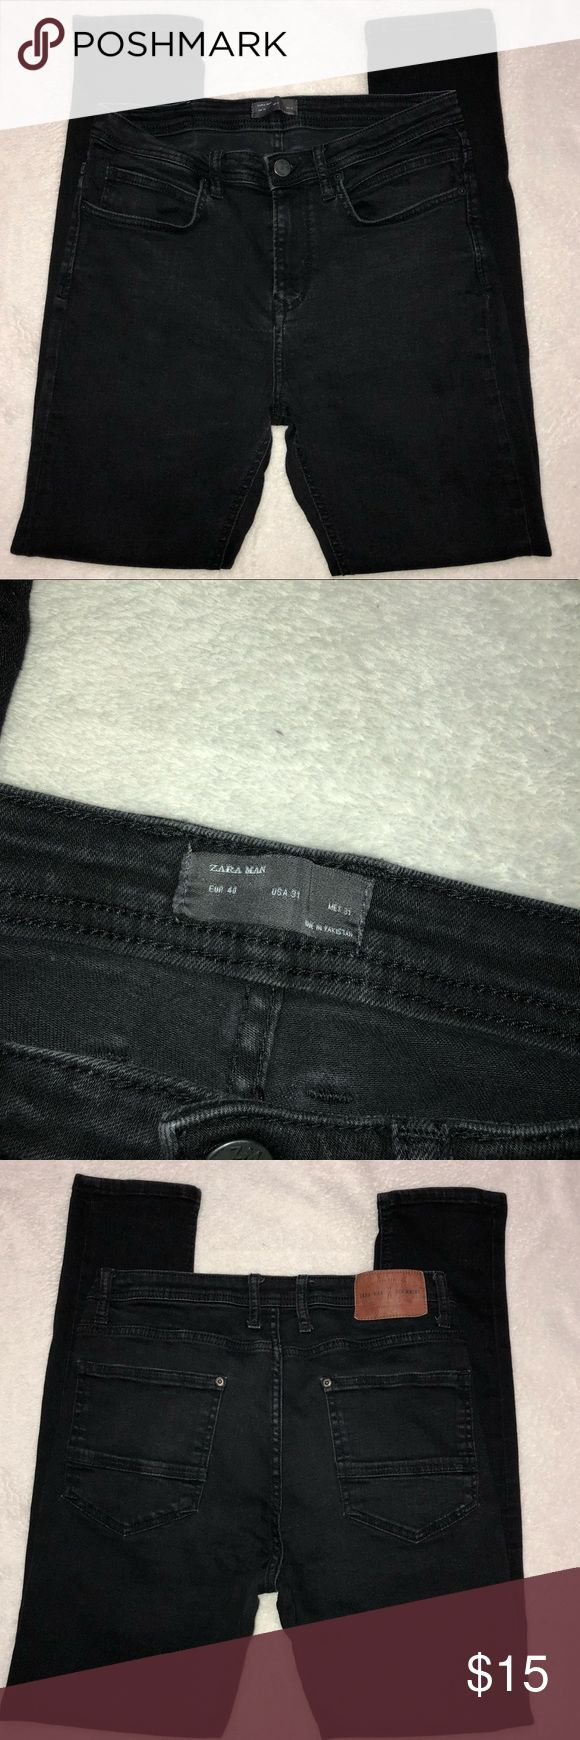 """Black Zara Man Skinny Jeans- Size 31 Black Zara Man Skinny Jeans- Size 31 Pre-owned, Good condition - a little stretched on the butt area but can't tell when wearing them  Material tag missing   Waist- 15 1/2"""" Rise - 10"""" Leg Opening- 5 1/4"""" Inseam- 29""""  *All measurements are approximate and taken with clothing lying flat   *184* Zara Jeans Skinny"""